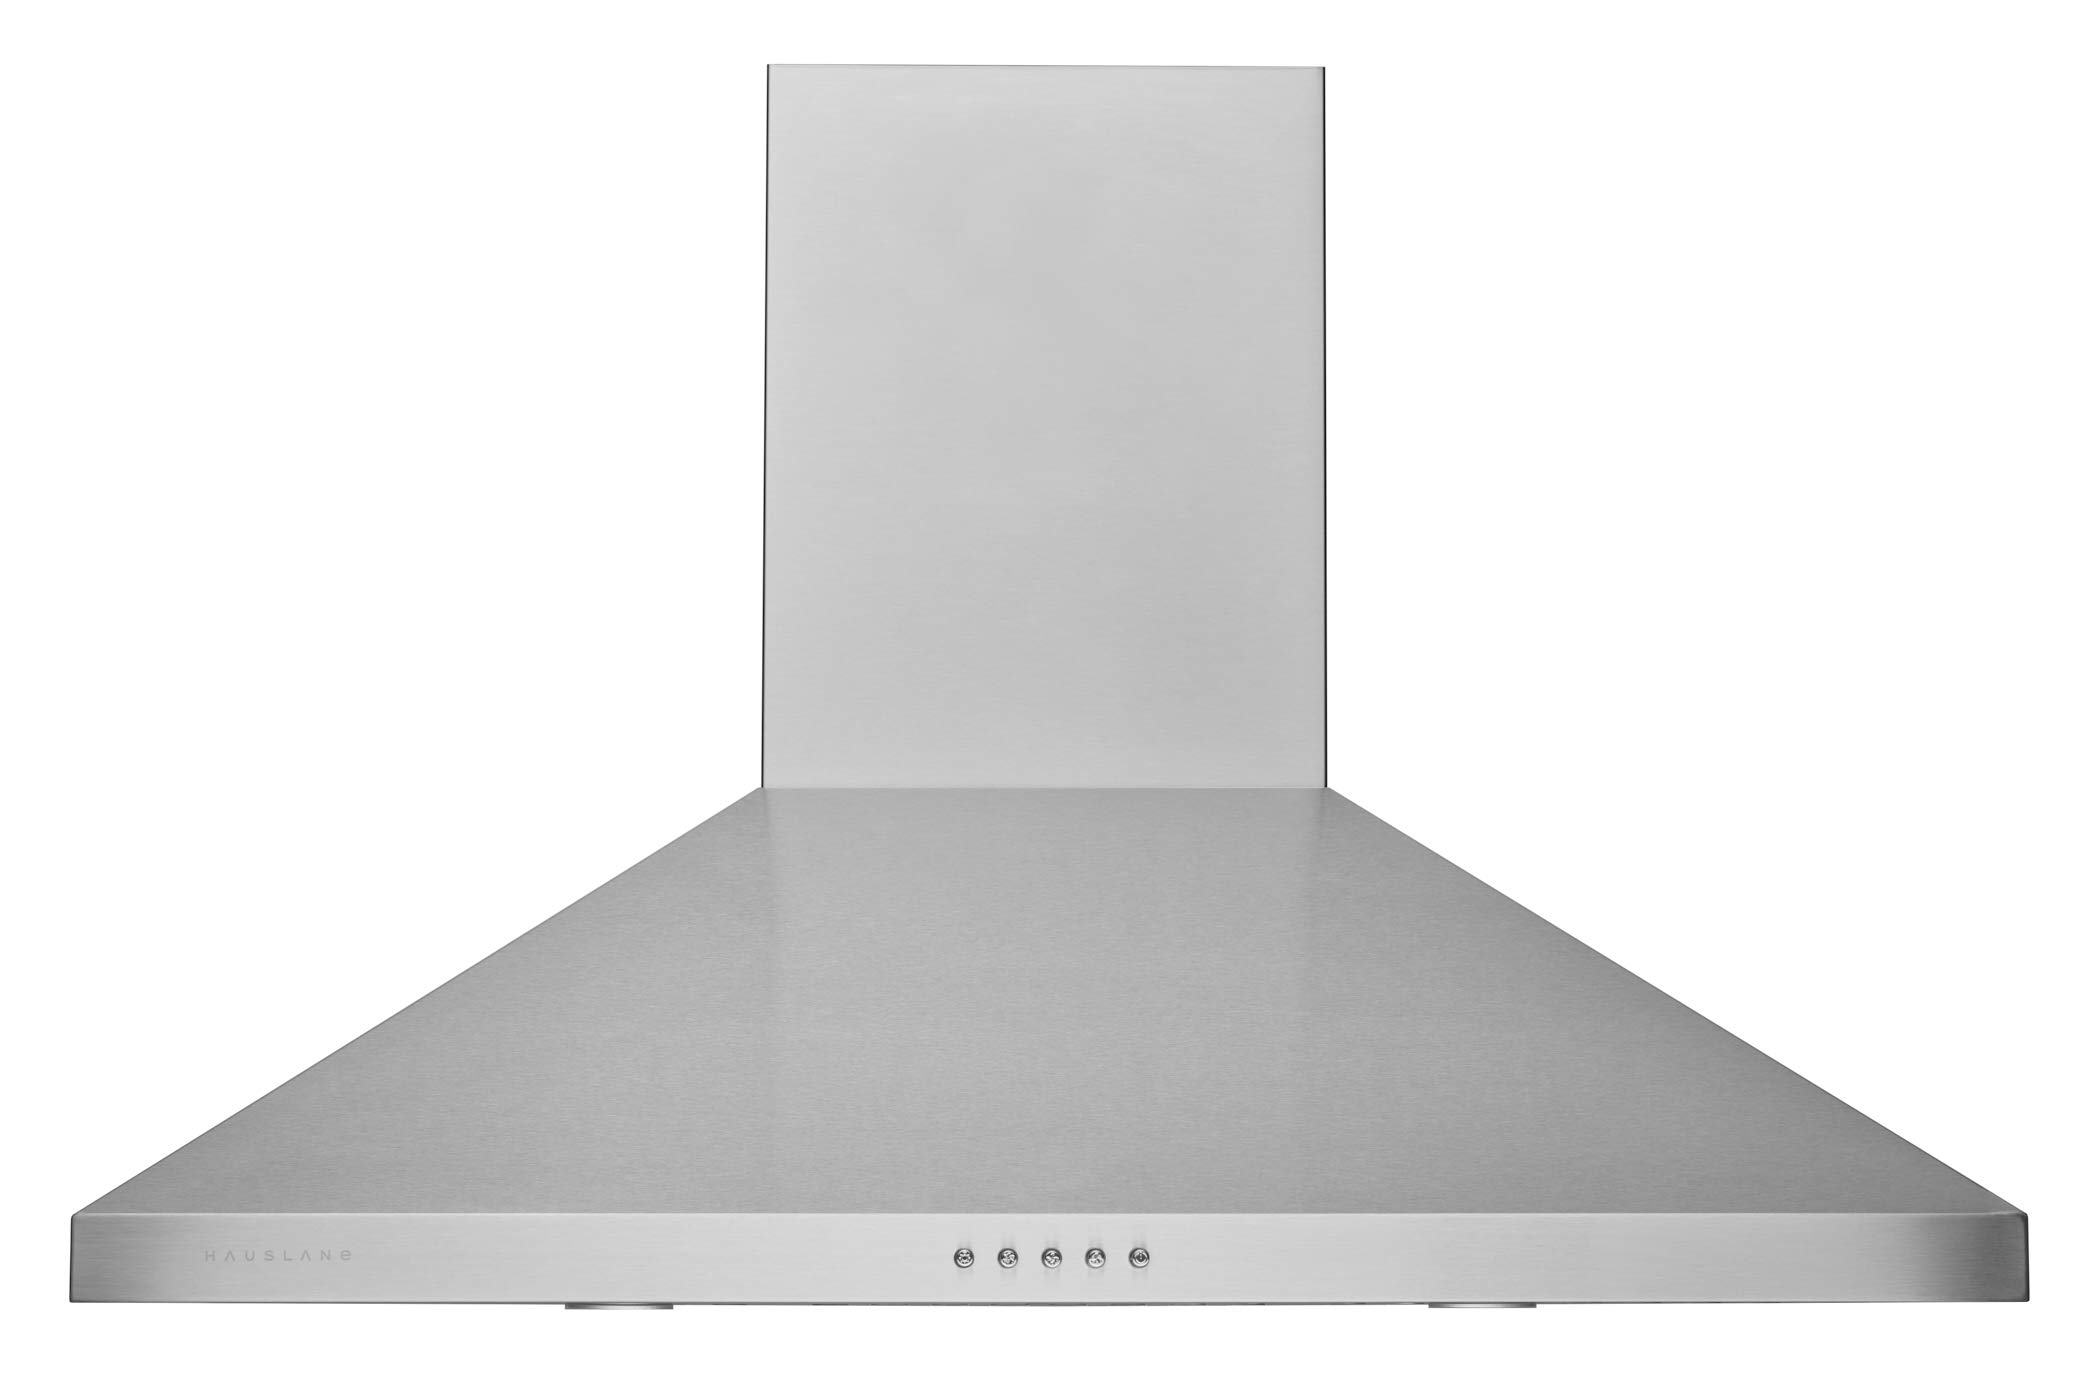 "Hauslane - Chef Series Range Hood 36"" WM-530SS-36P - European Style Series - 3 Speed Stainless Steel Wall-Mount - Strong Suction - Button Control, Steel Baffle Filter, LED Lamps - 6"" Duct or Ductless"